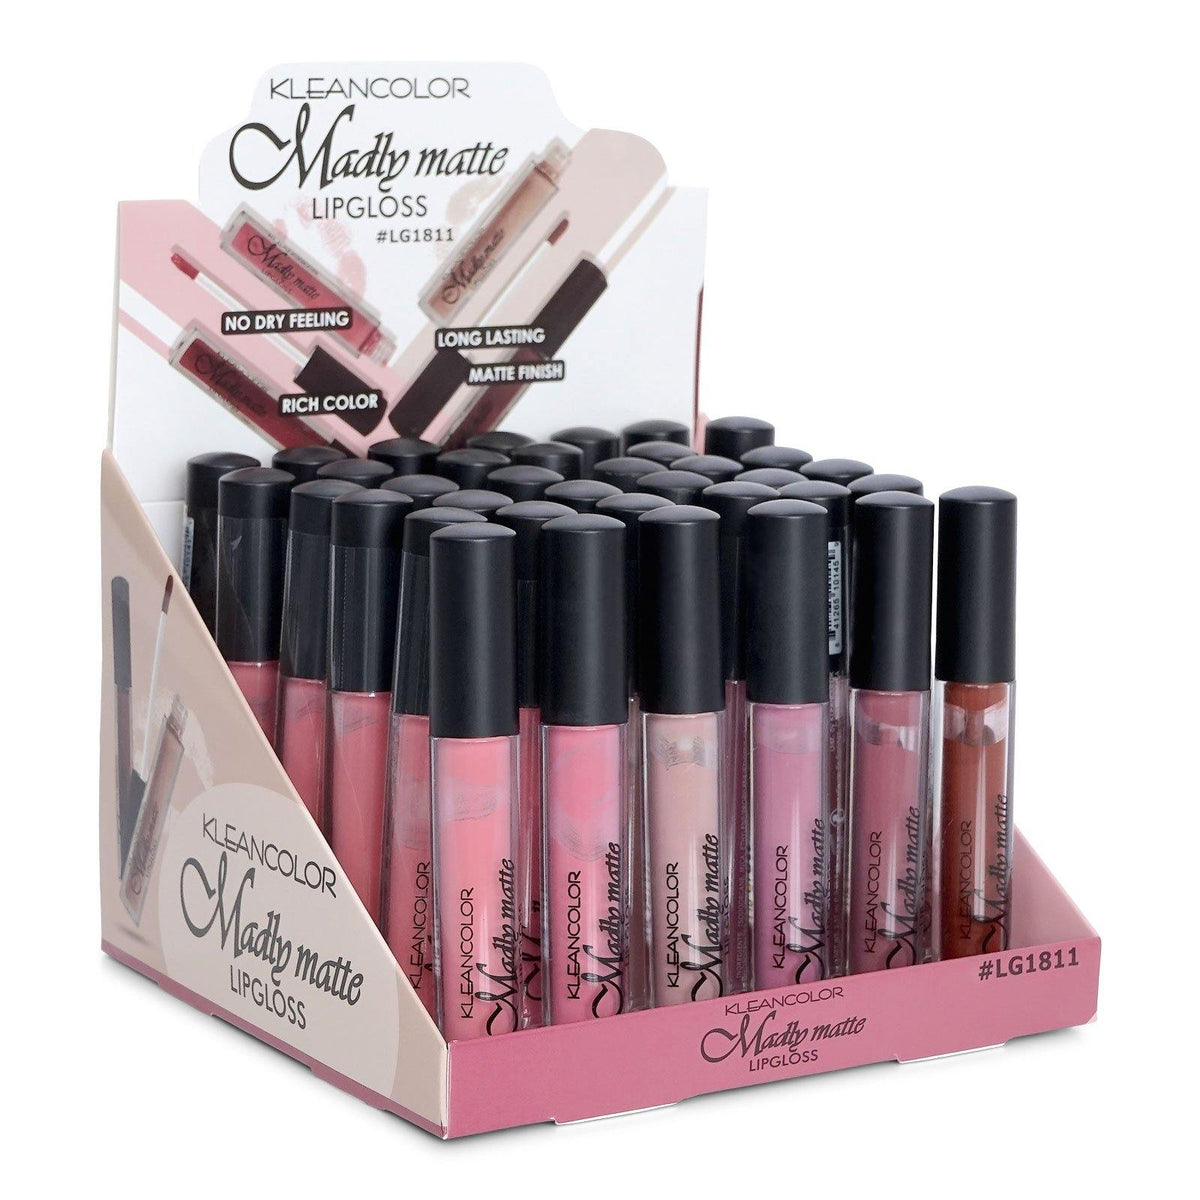 KLEANCOLOR Madly Matte Lip Gloss-6 nude-mauve color assorted {#1600-1605) (LG1811) (36/cs)